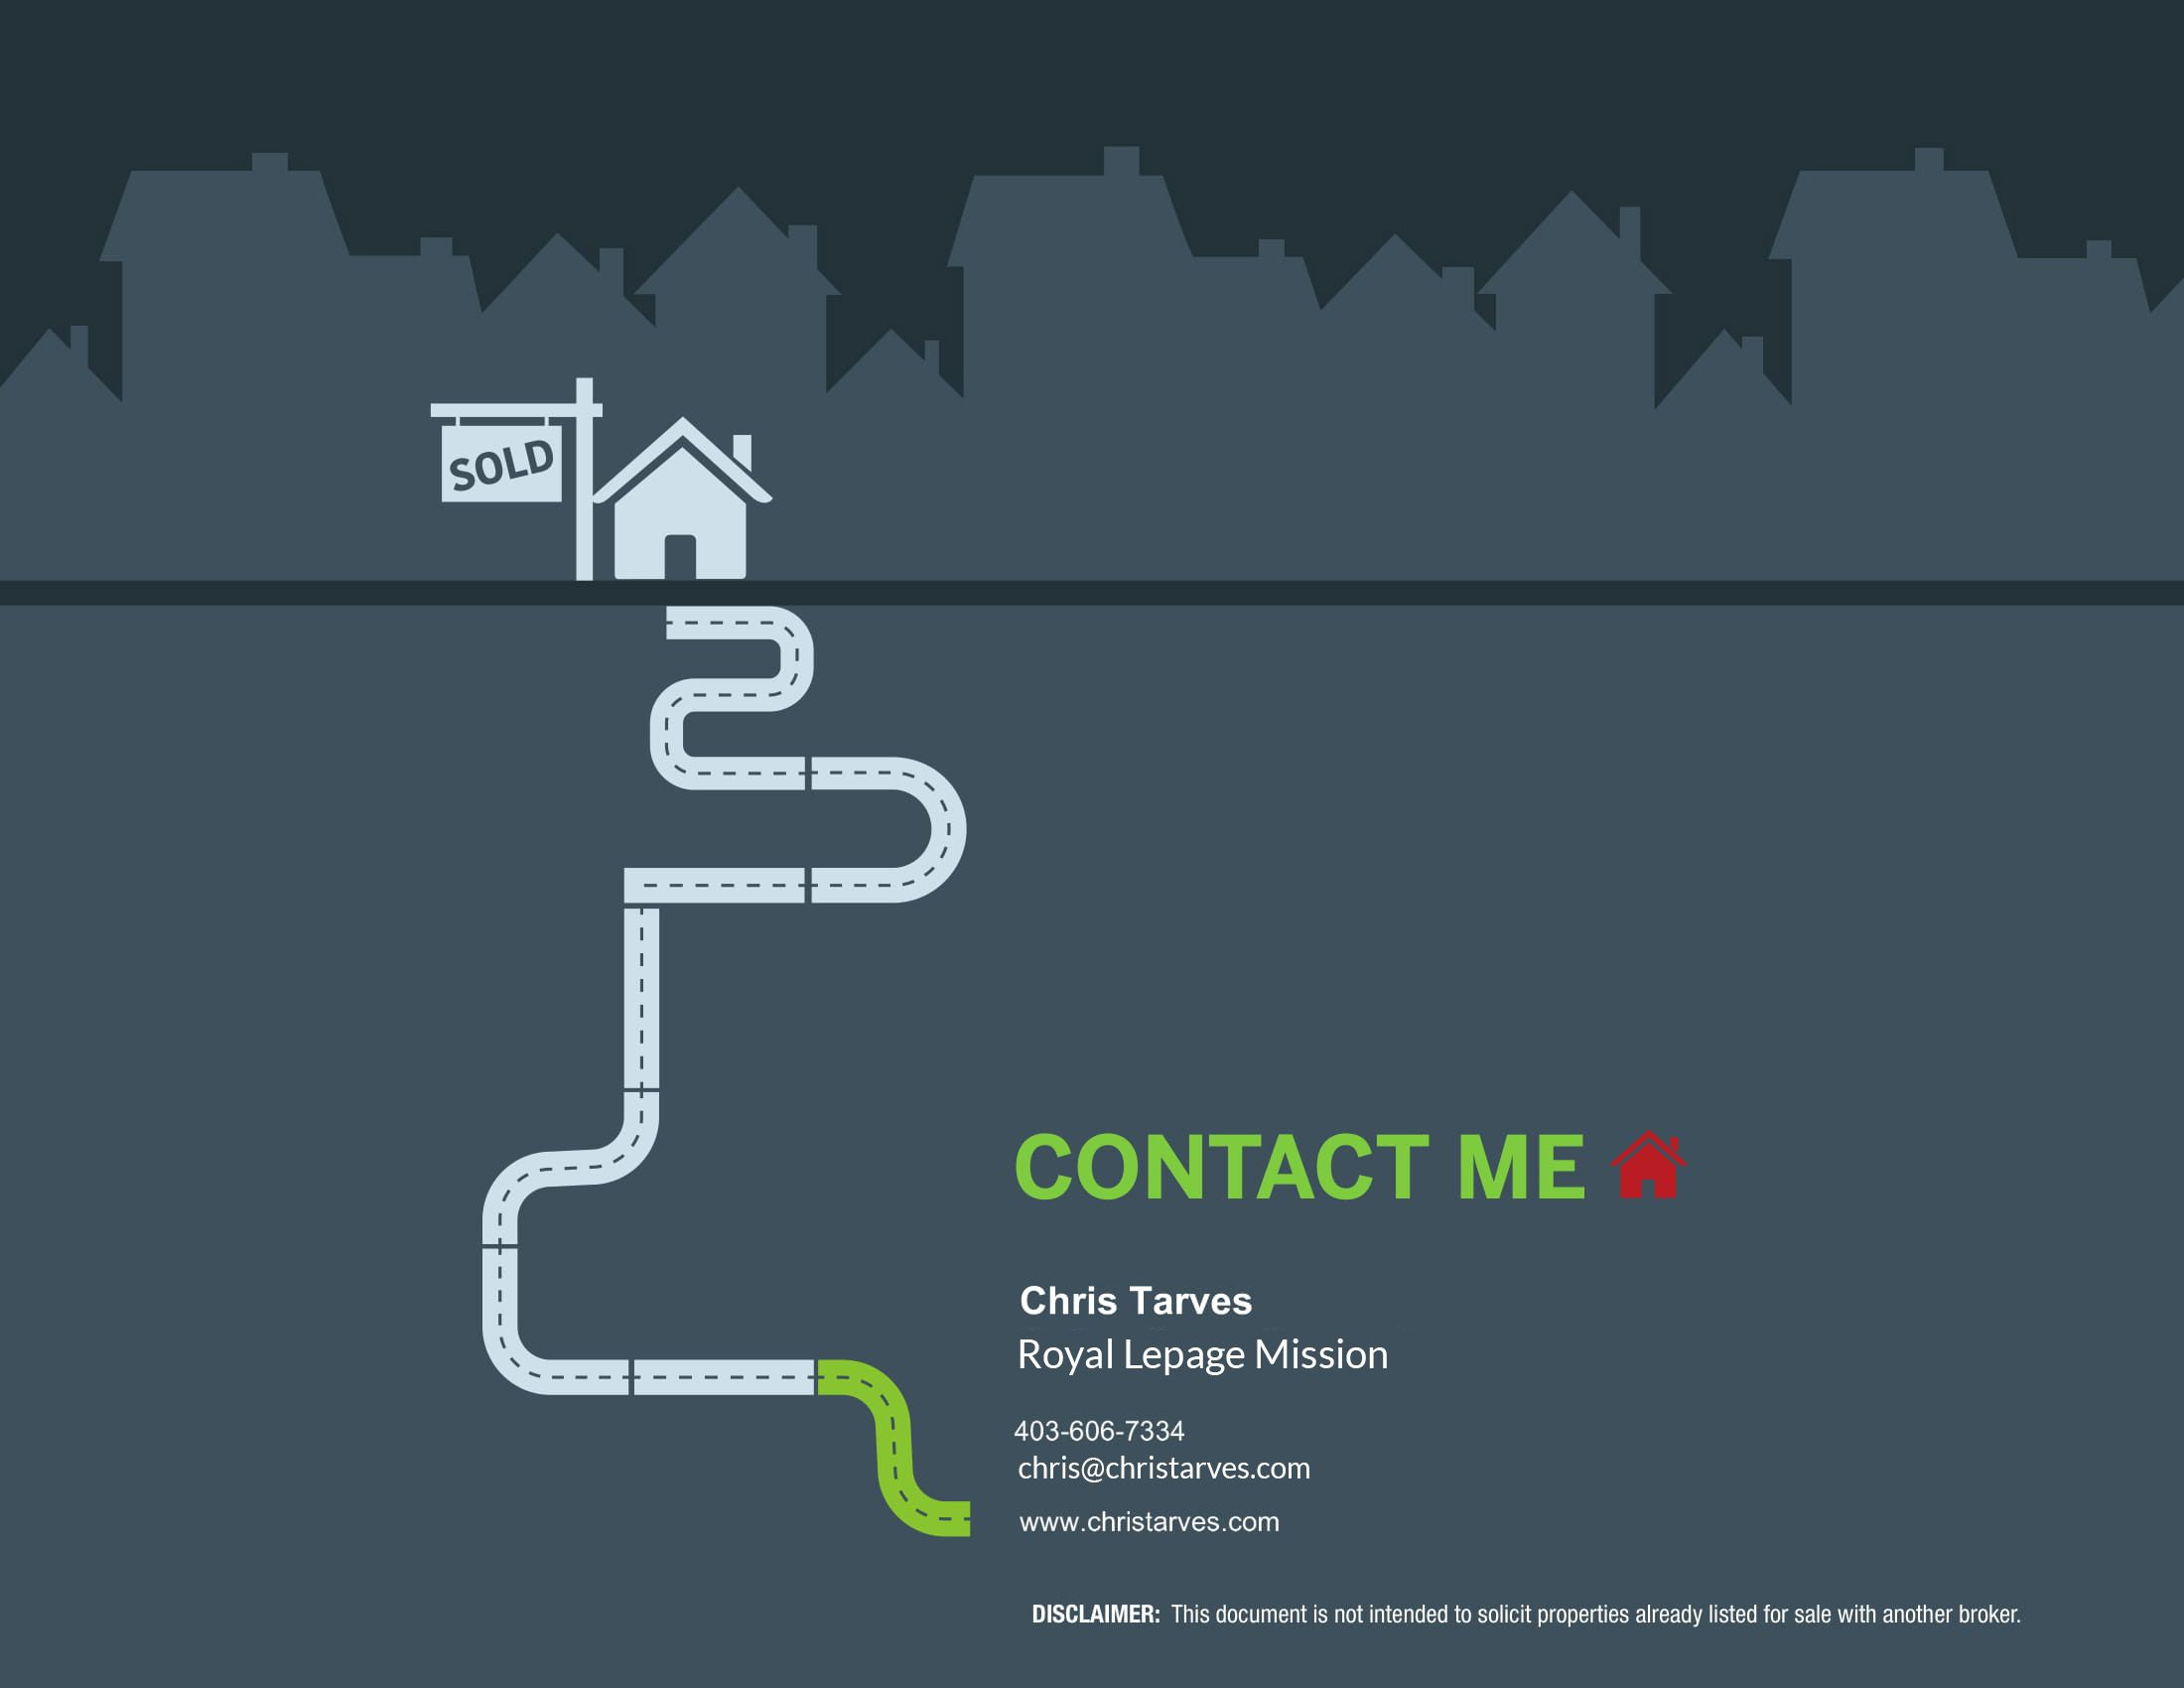 ChrisTarves-ContactMe